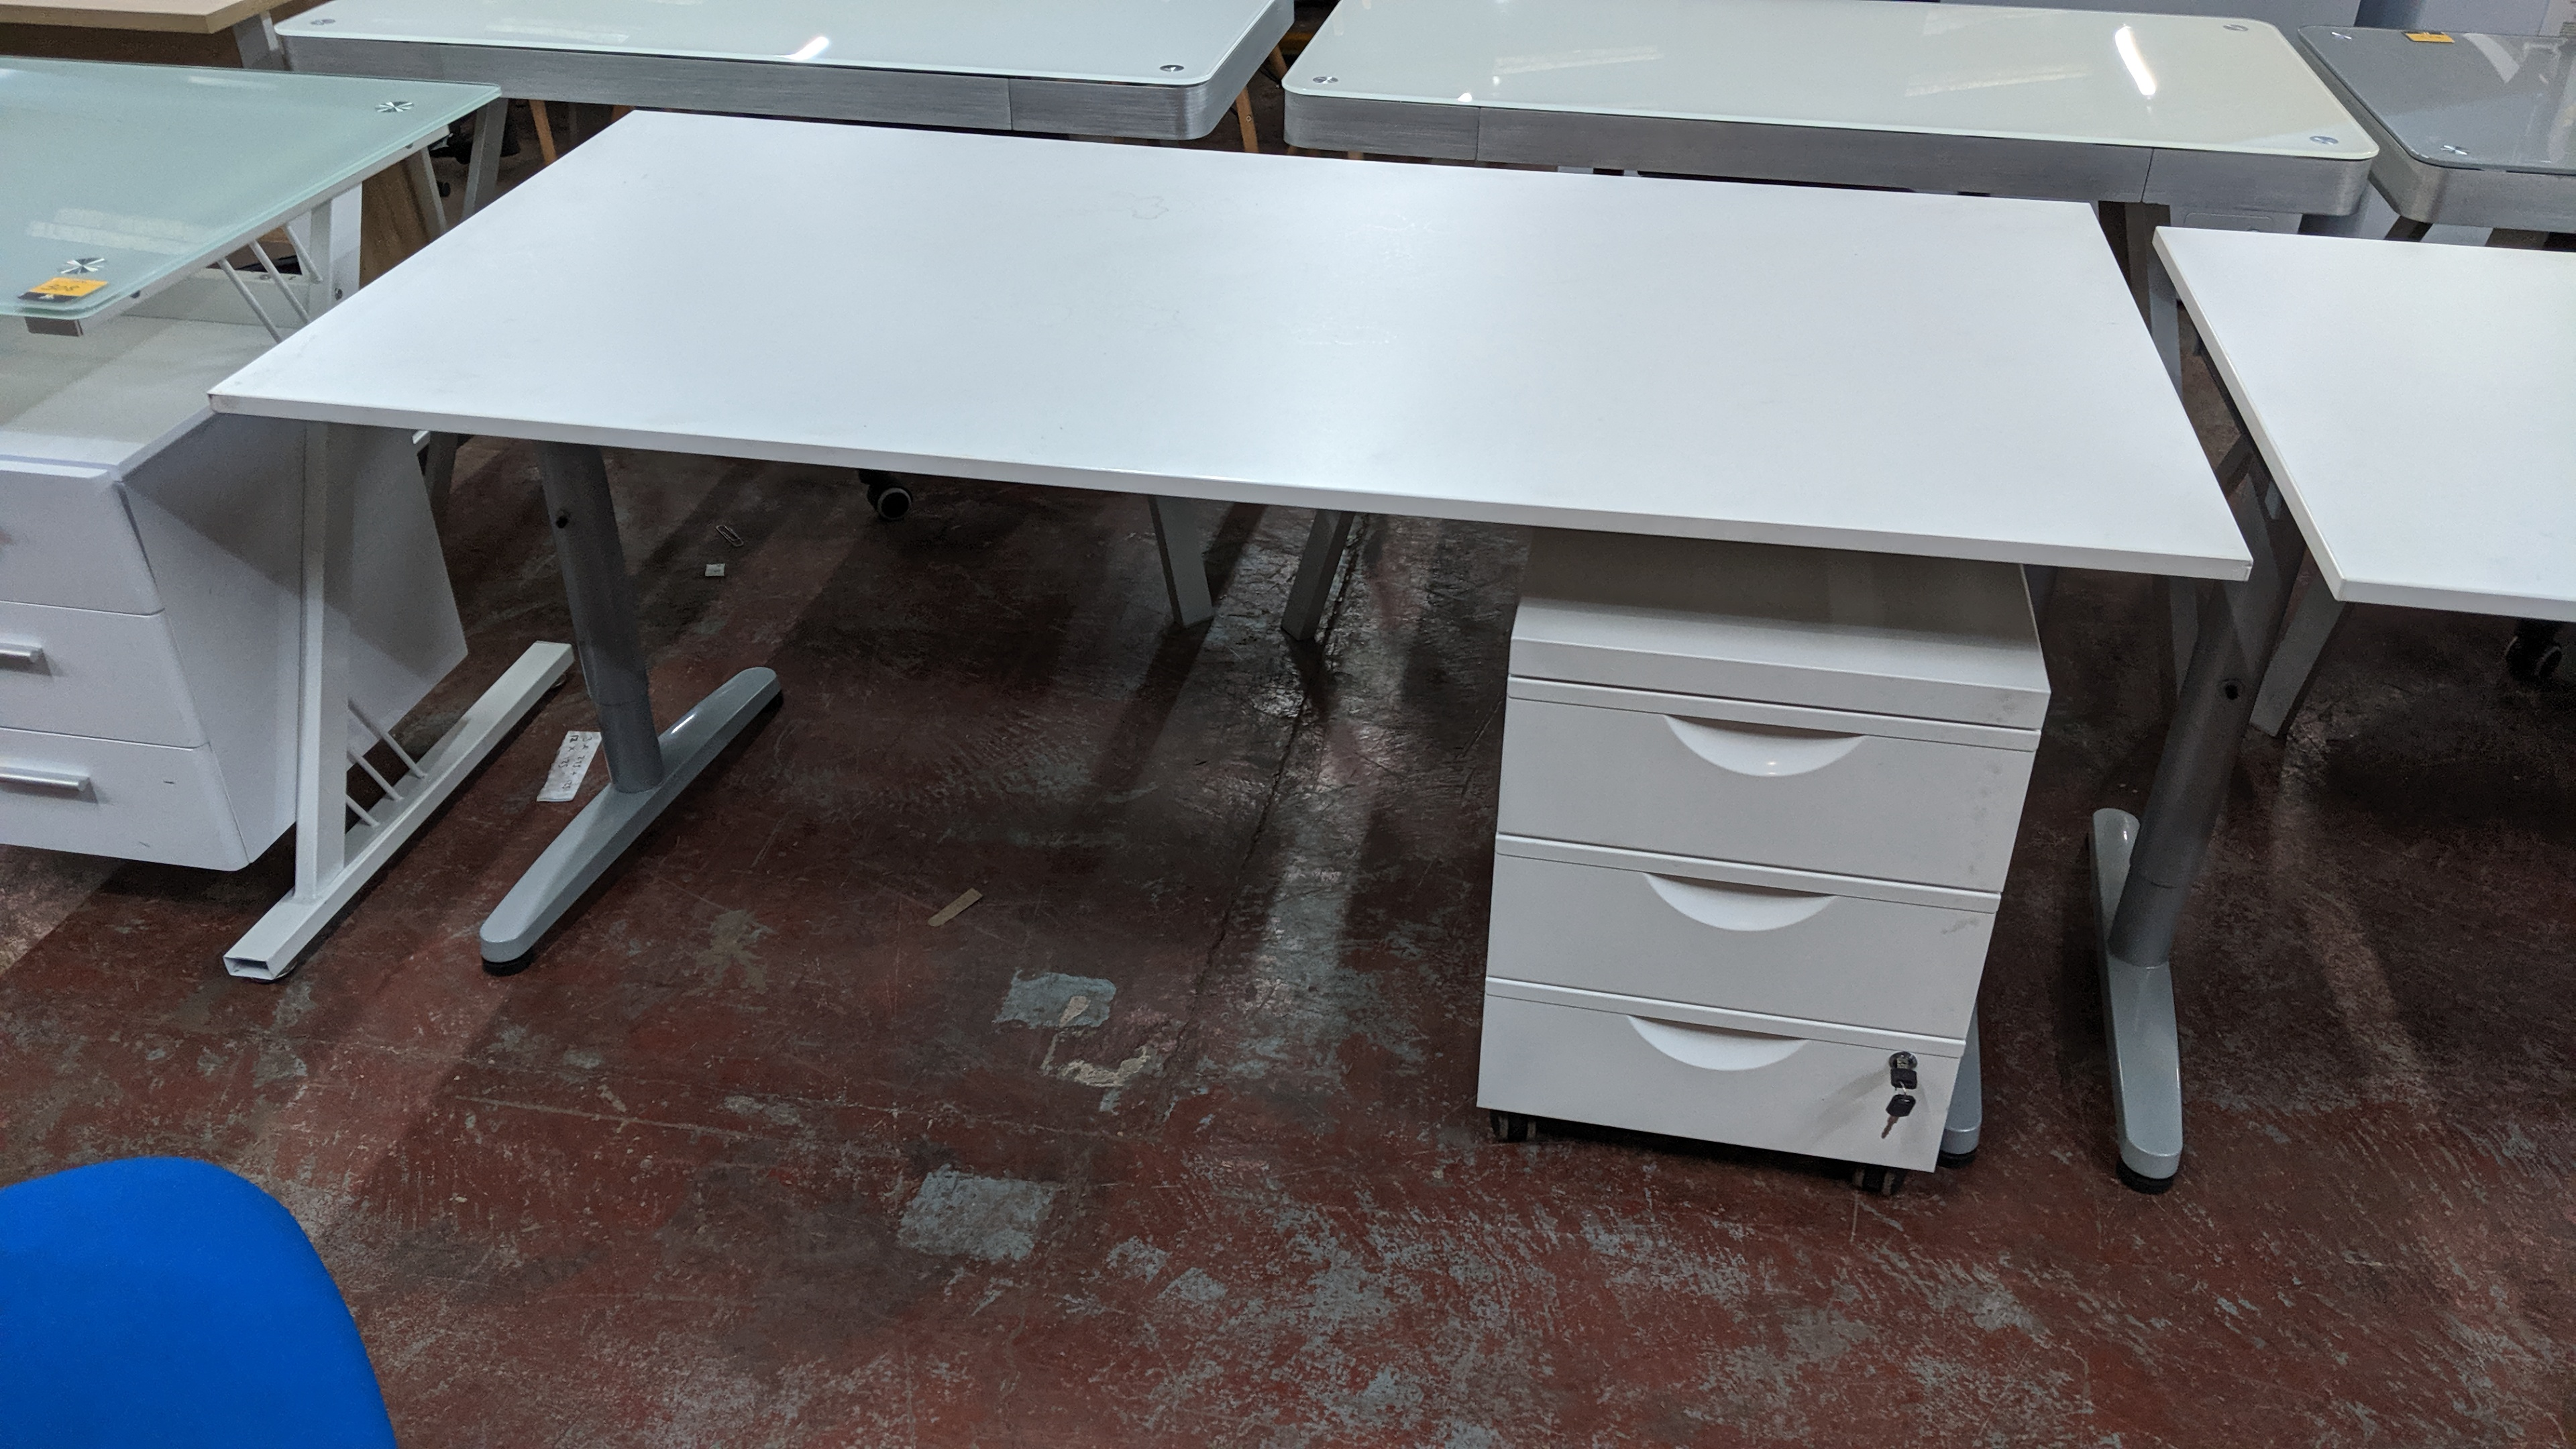 Lot 303 - 2 off matching large white tables/desks, 160 x 80cm, each with matching mobile pedestal & extendable